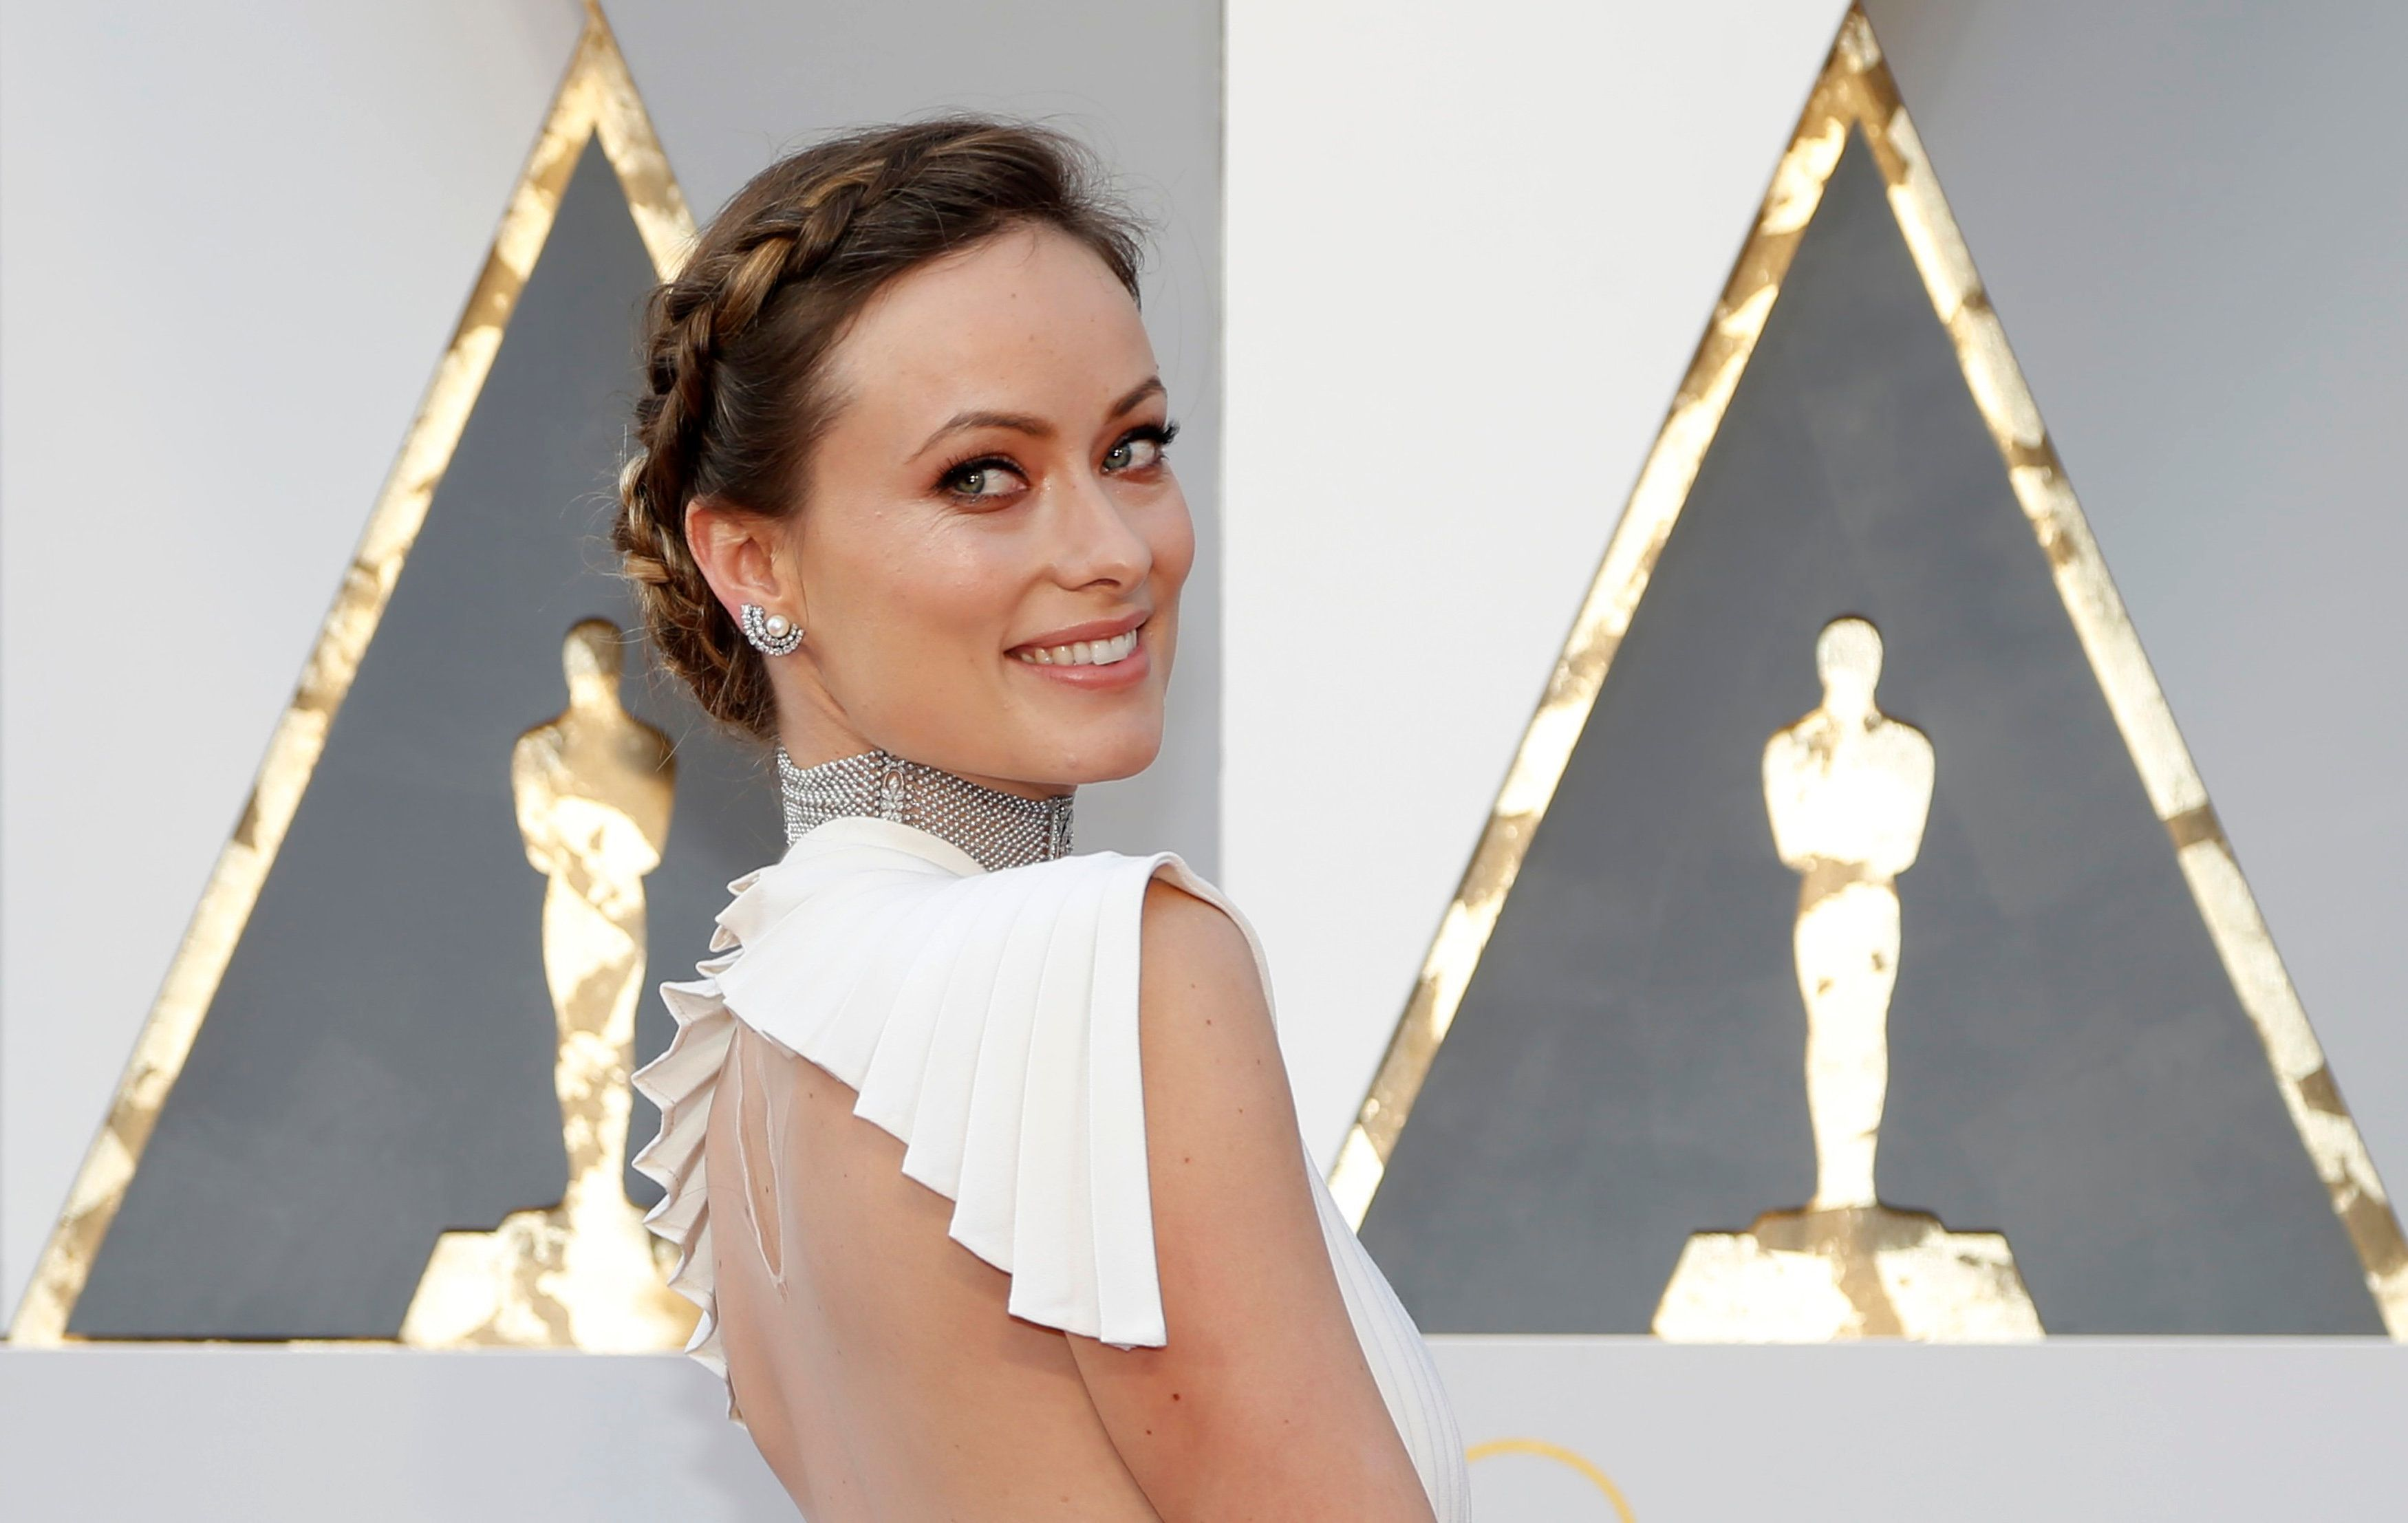 Actress Olivia Wilde poses as she arrives at the 88th Academy Awards in Hollywood, California February 28, 2016.  REUTERS/Lucy Nicholson